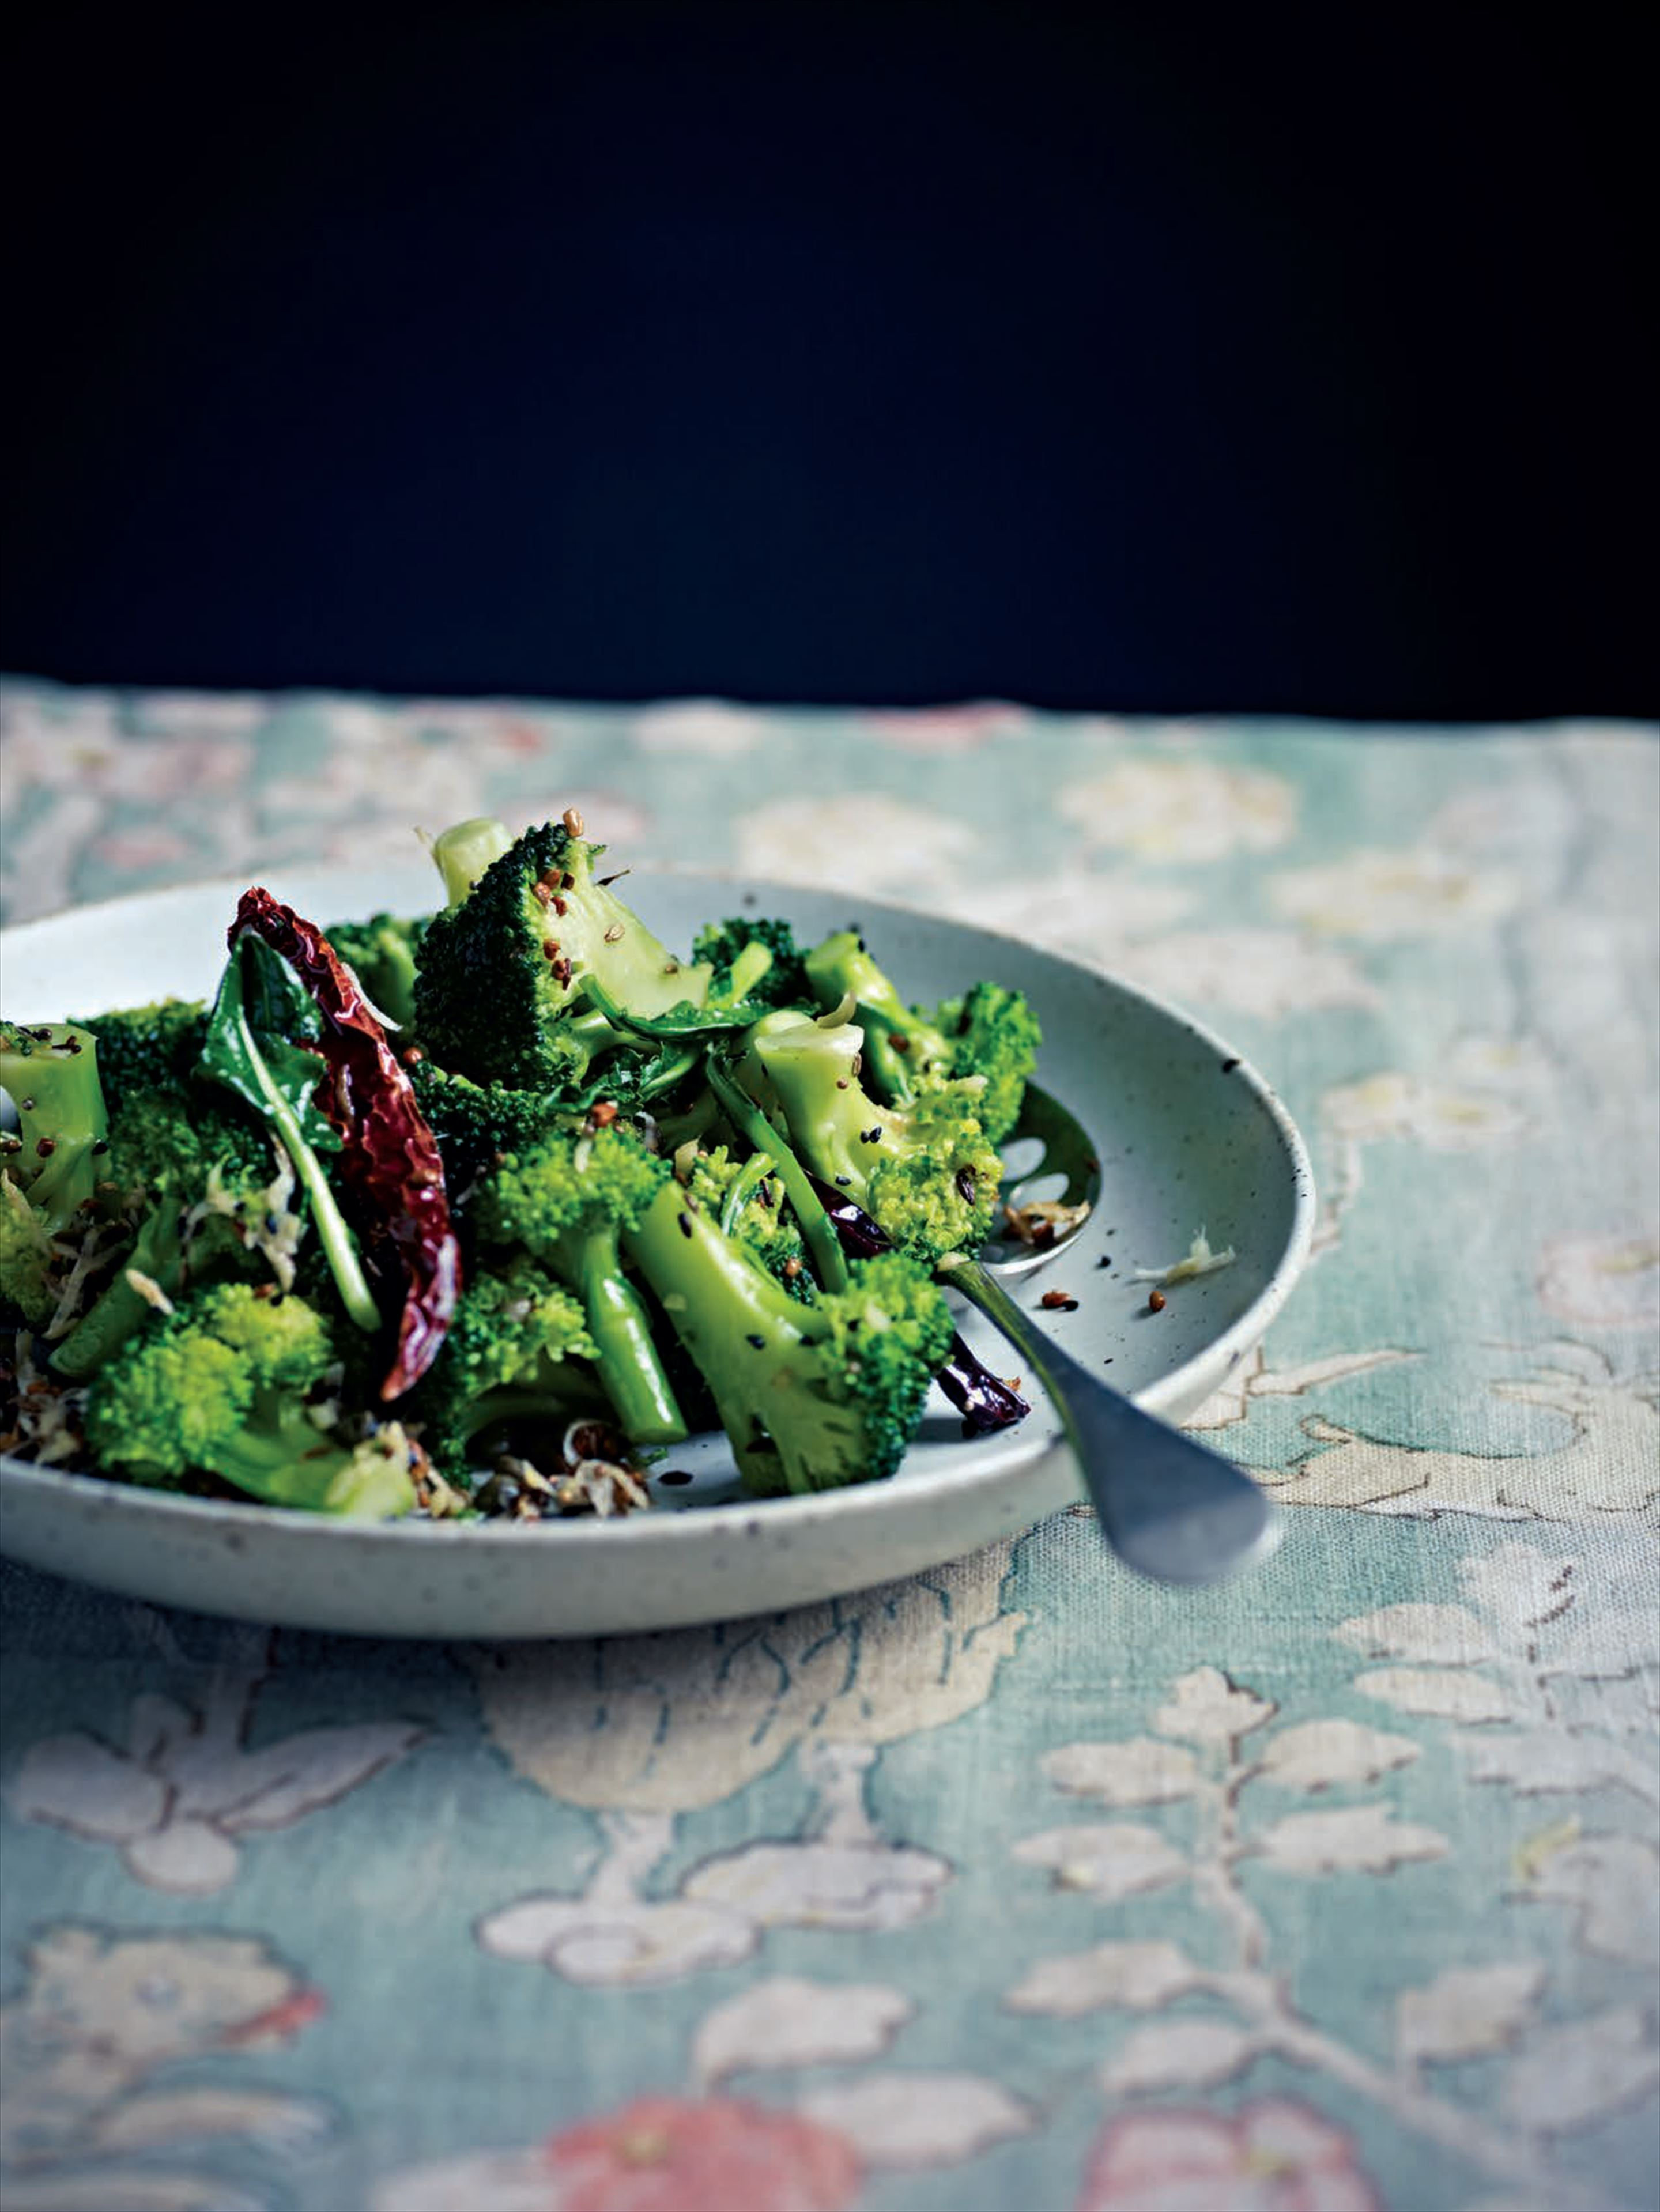 Spiced broccoli with capers